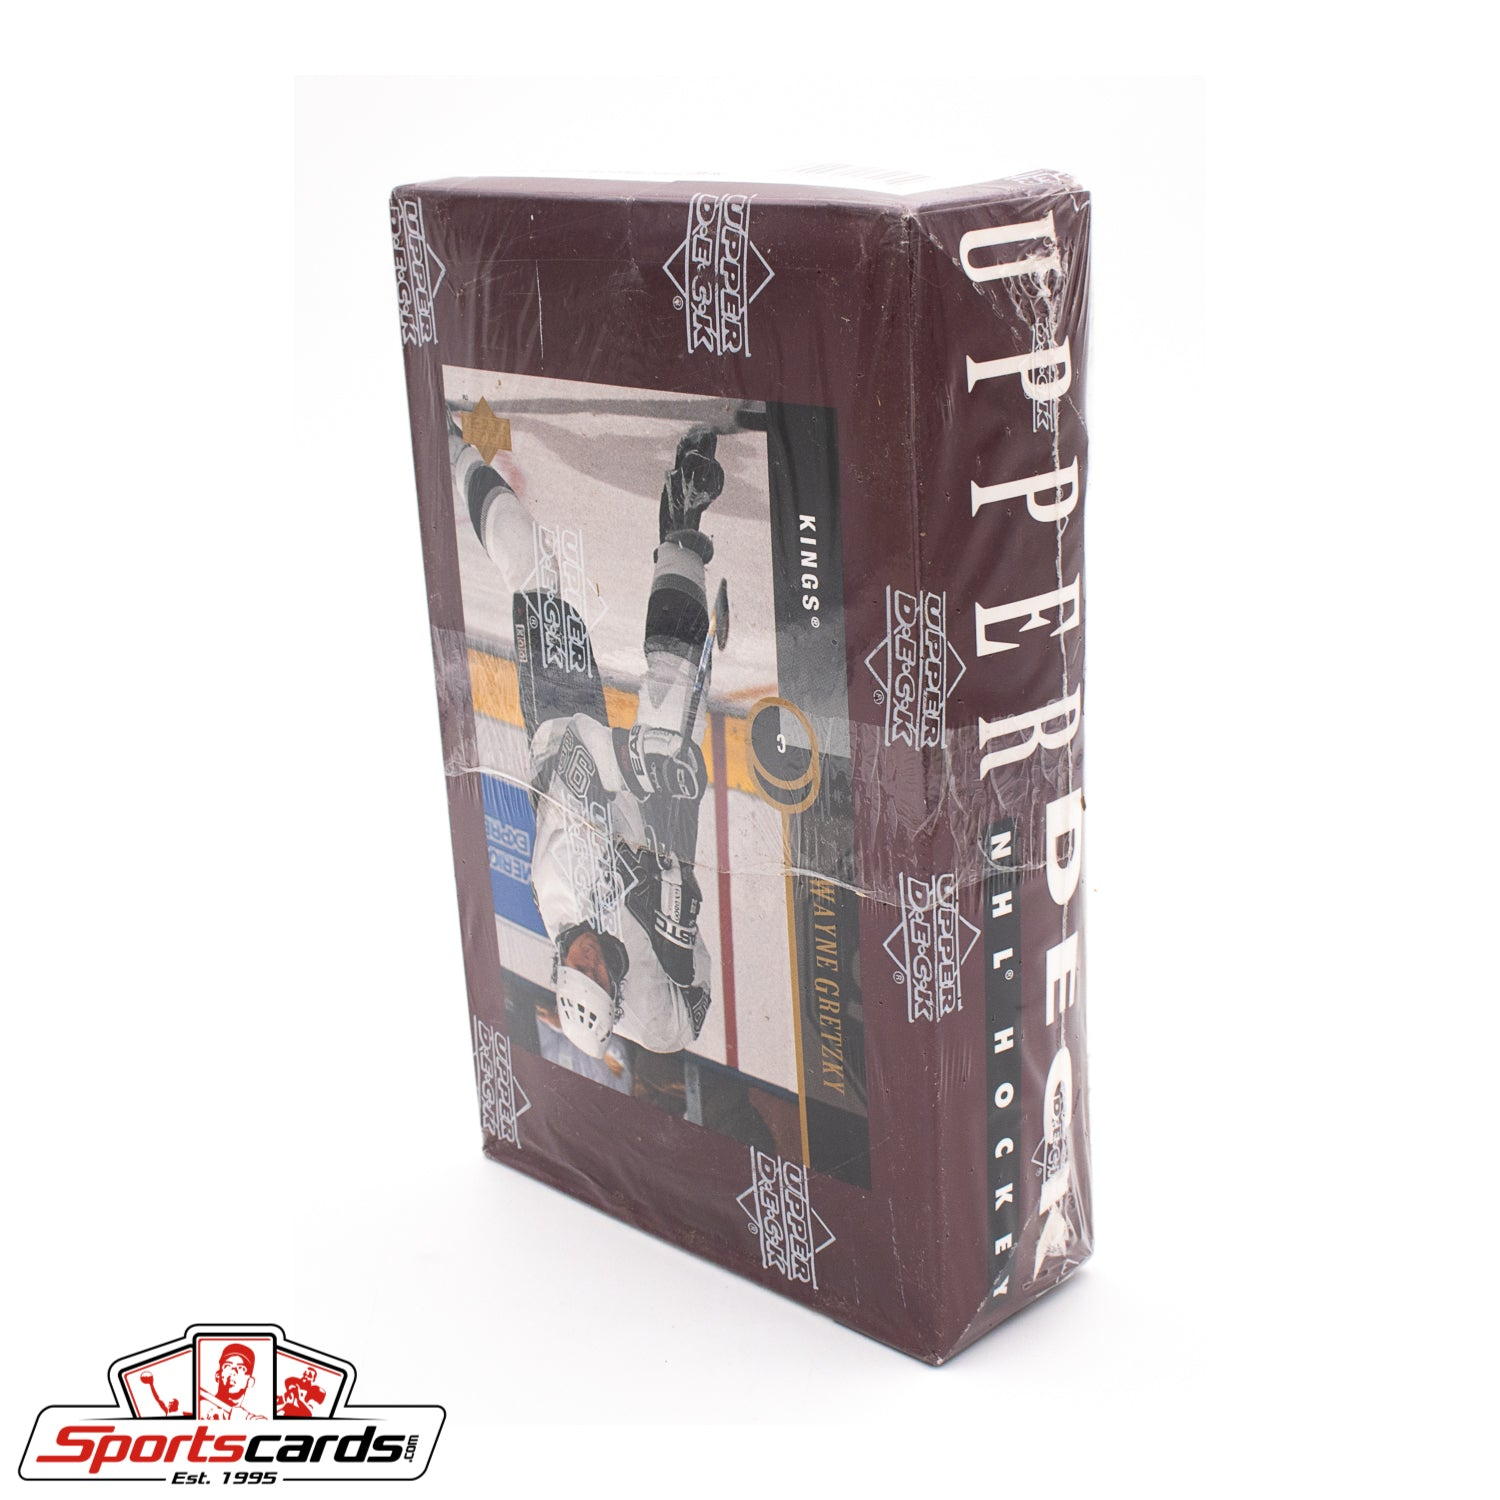 1994-95 Upper Deck Hockey Series 1 Factory Sealed Box